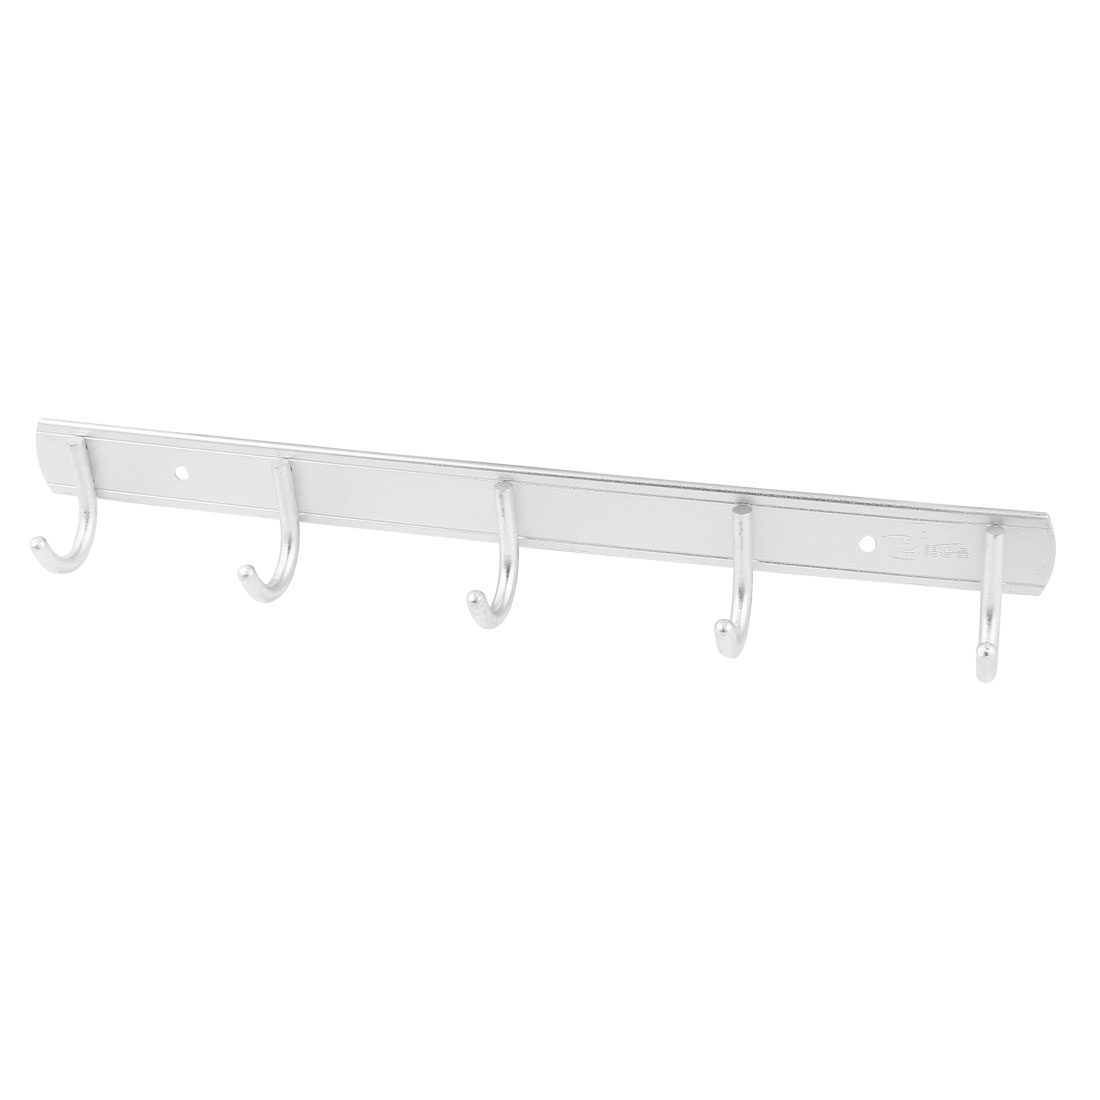 Household Aluminium Alloy Wall Mounted 5 Hooks Towel Rack Hanger 36cm